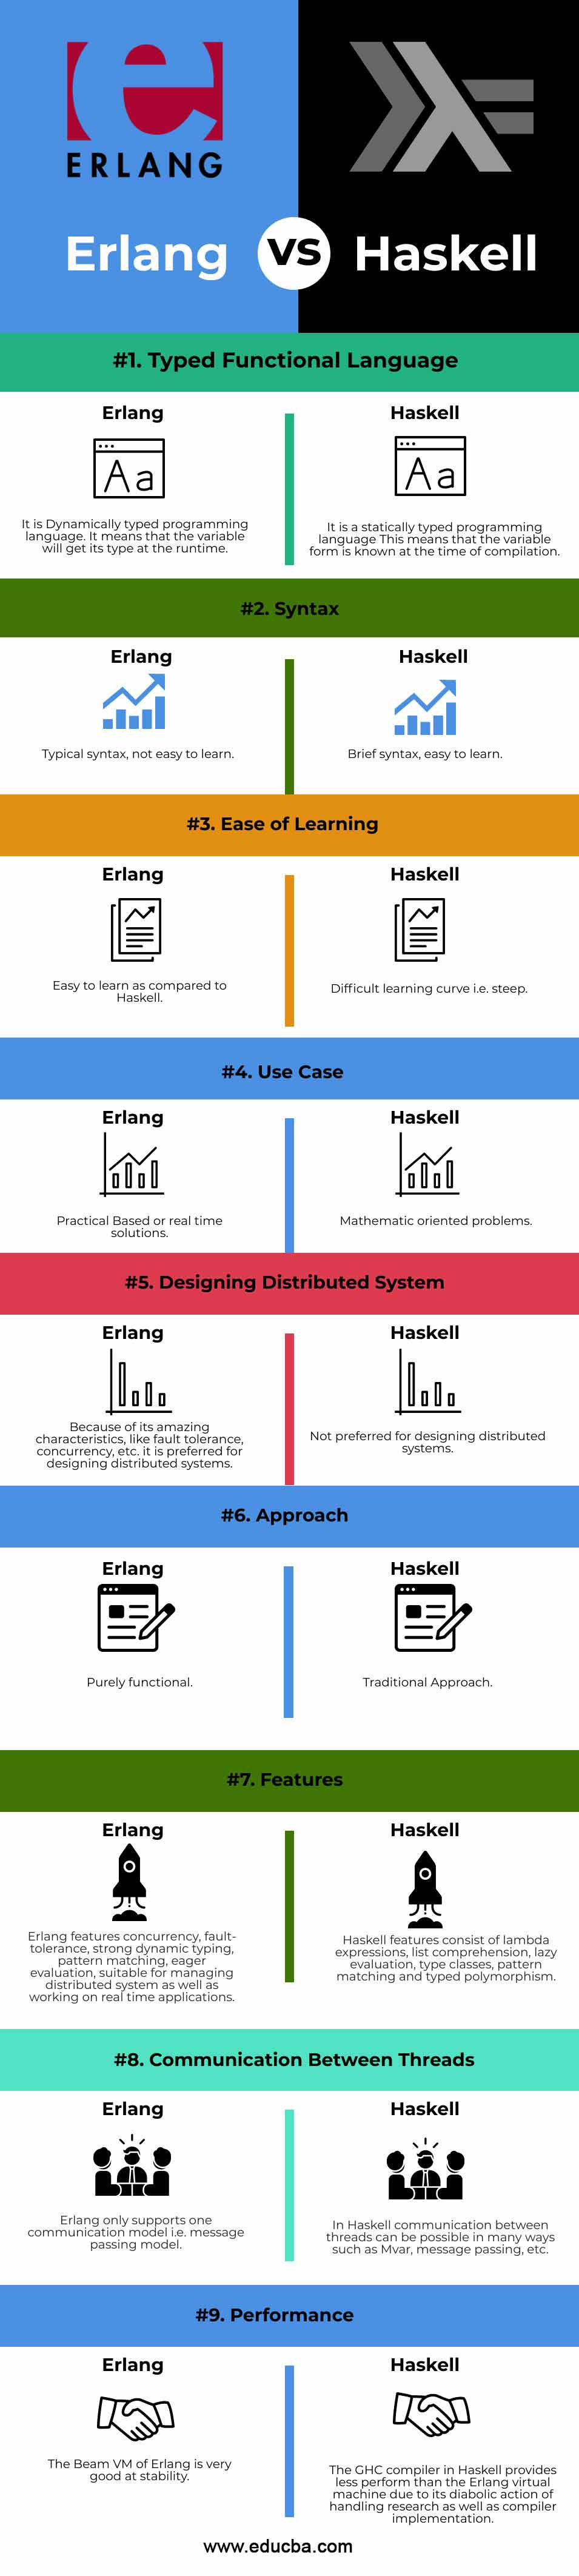 Erlang vs Haskell info